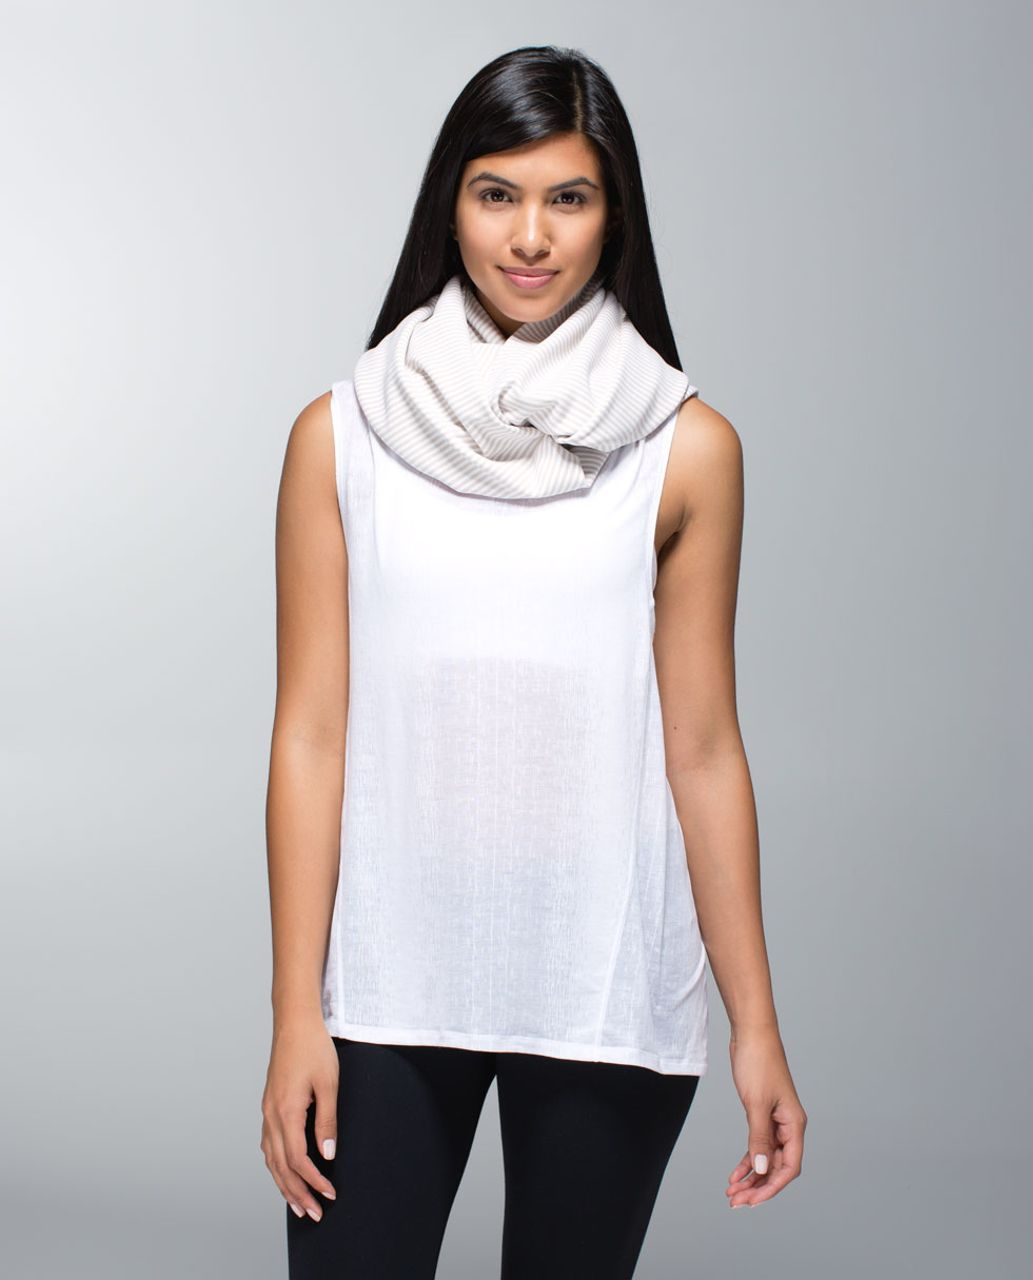 Lululemon Vinyasa Scarf *Rulu - Heathered Cashew / 1/8 Stripe Heathered Cashew White